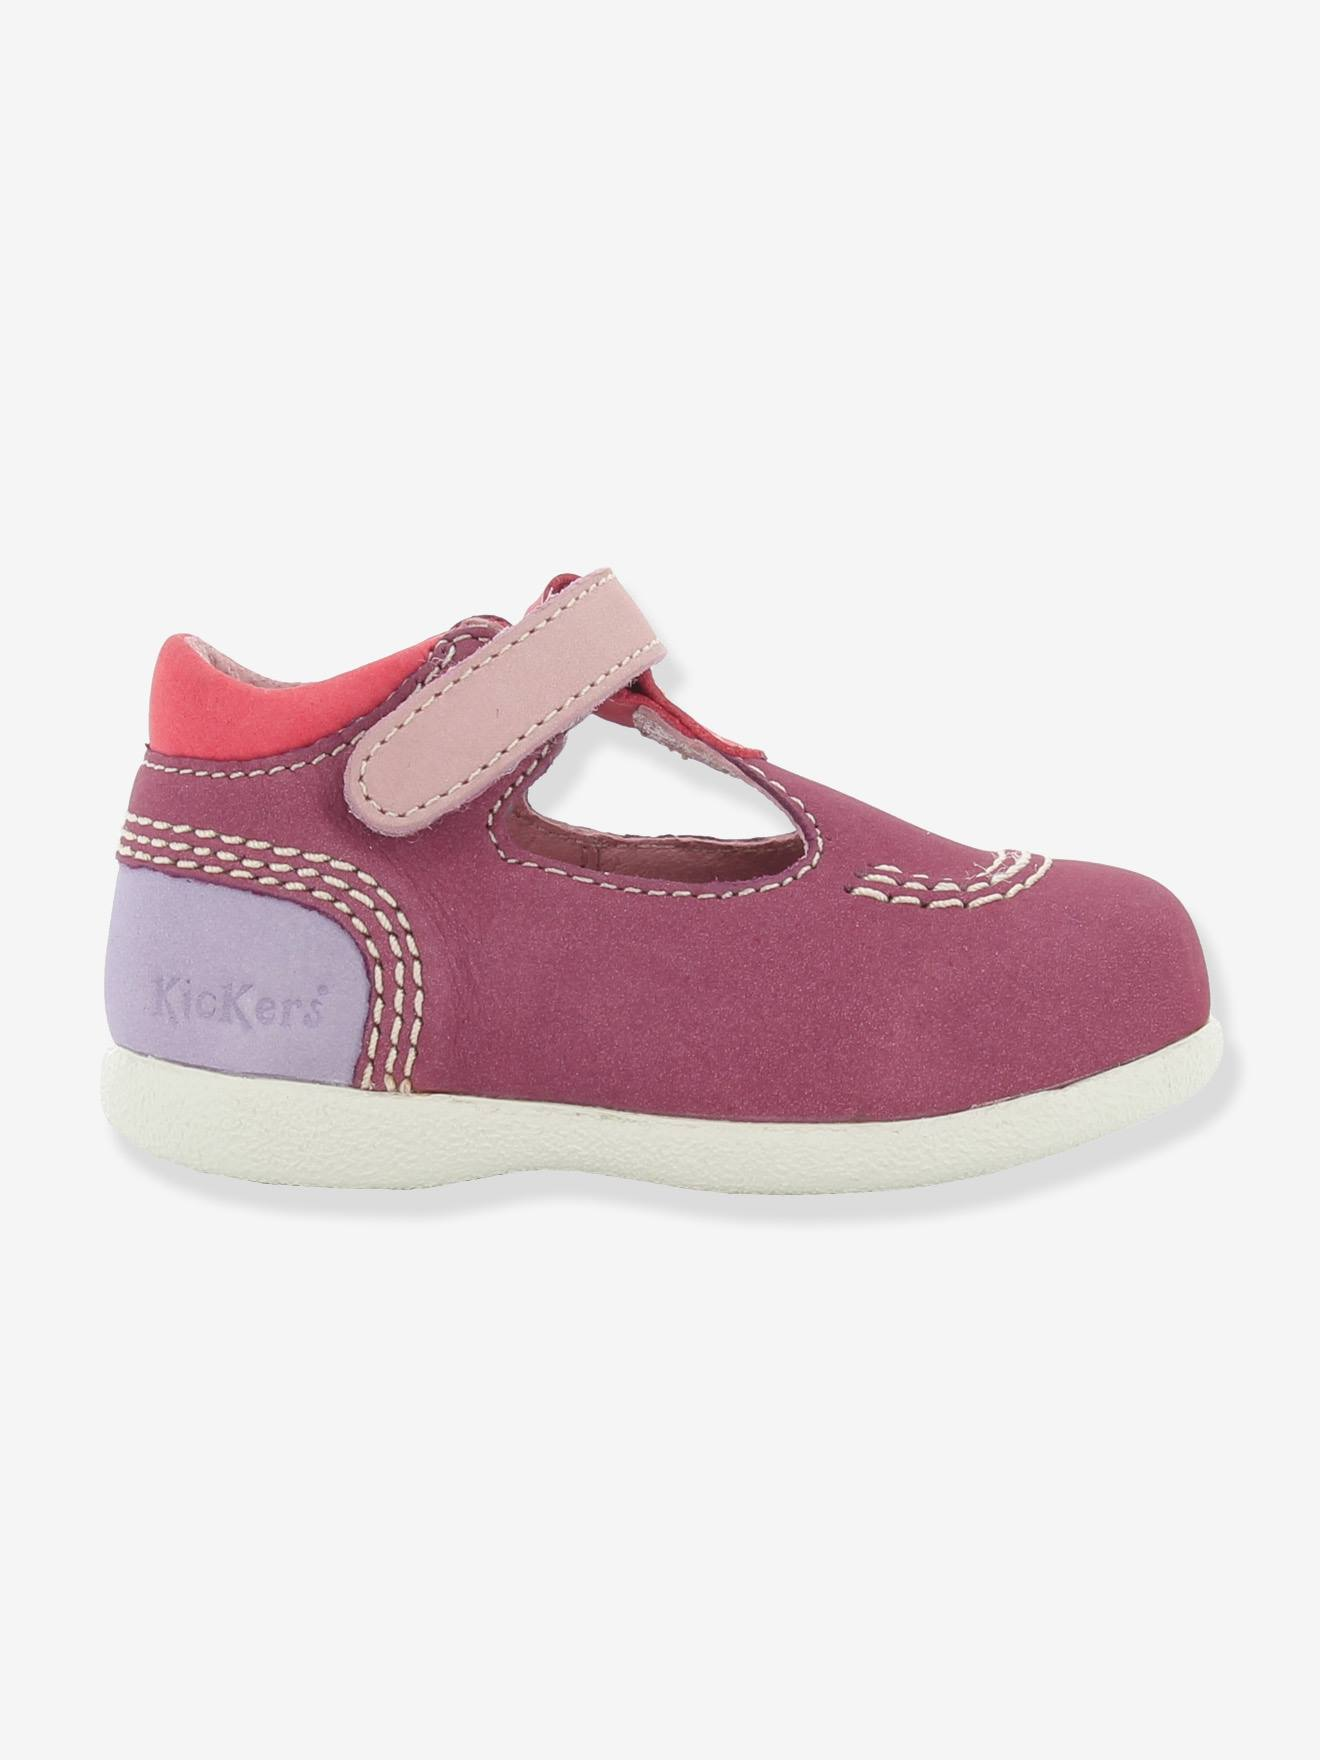 18 Fille B茅b Chaussure Pointure Bebe chaussures Chaussures doerxWCB